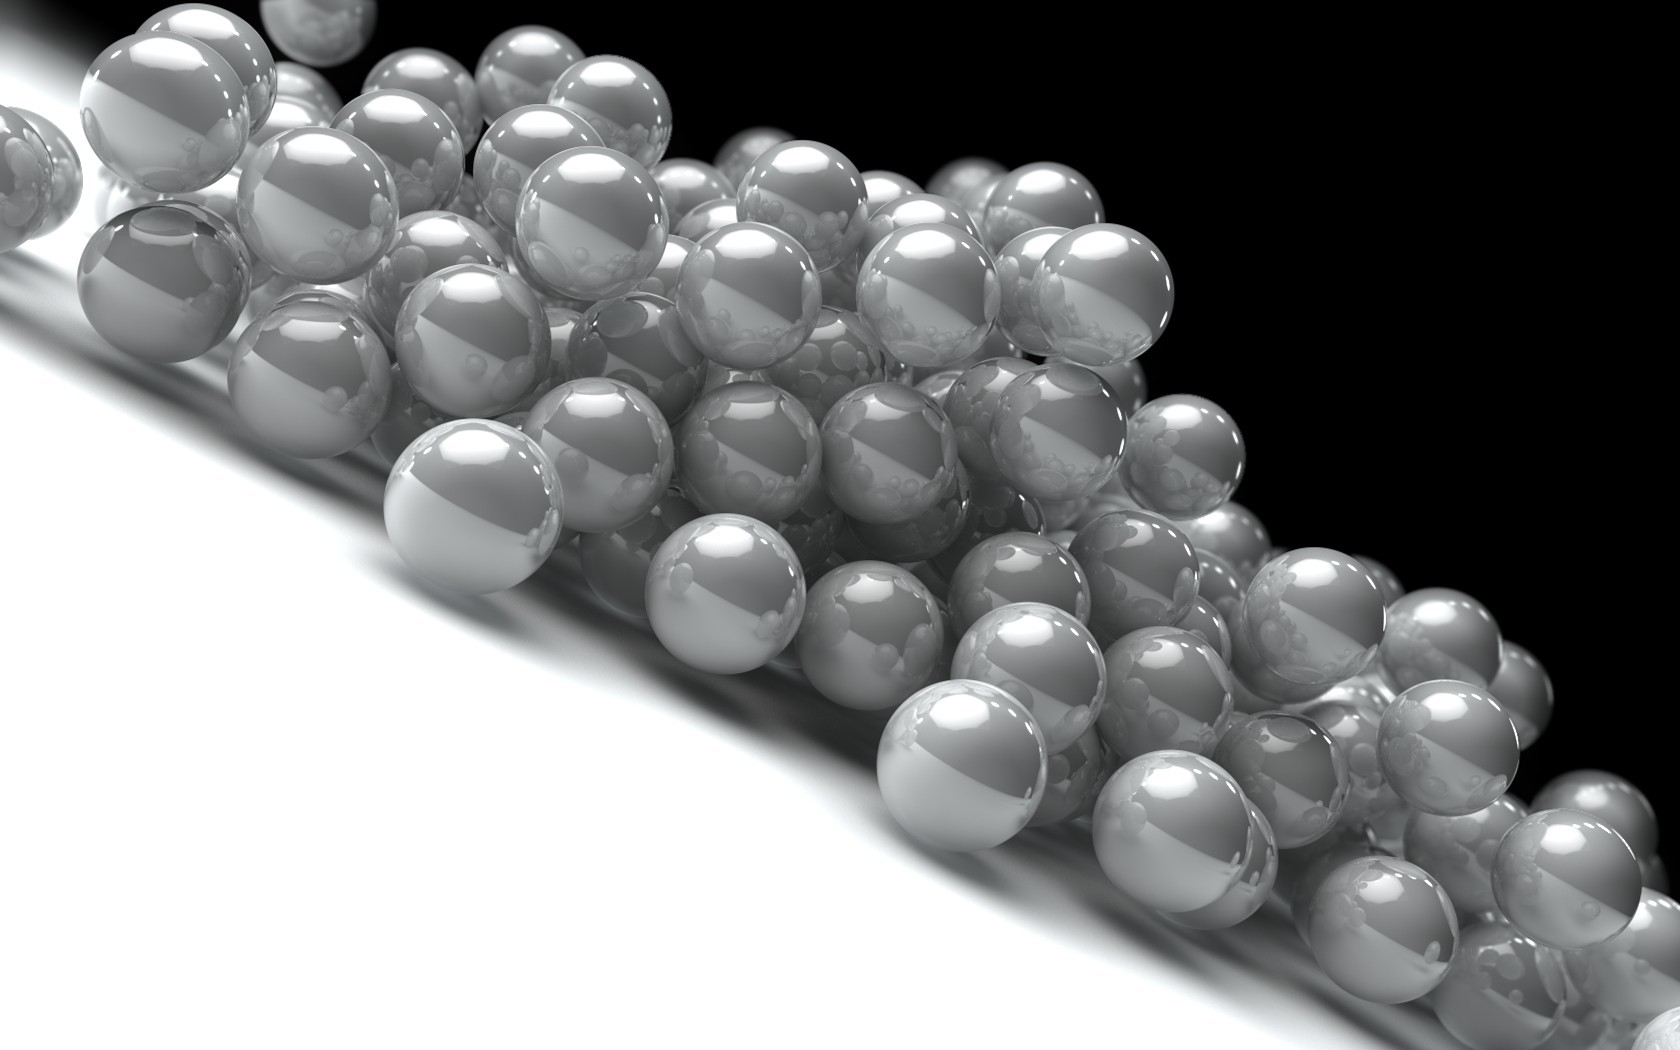 balls deviantart Beads monochrome HD Wallpaper